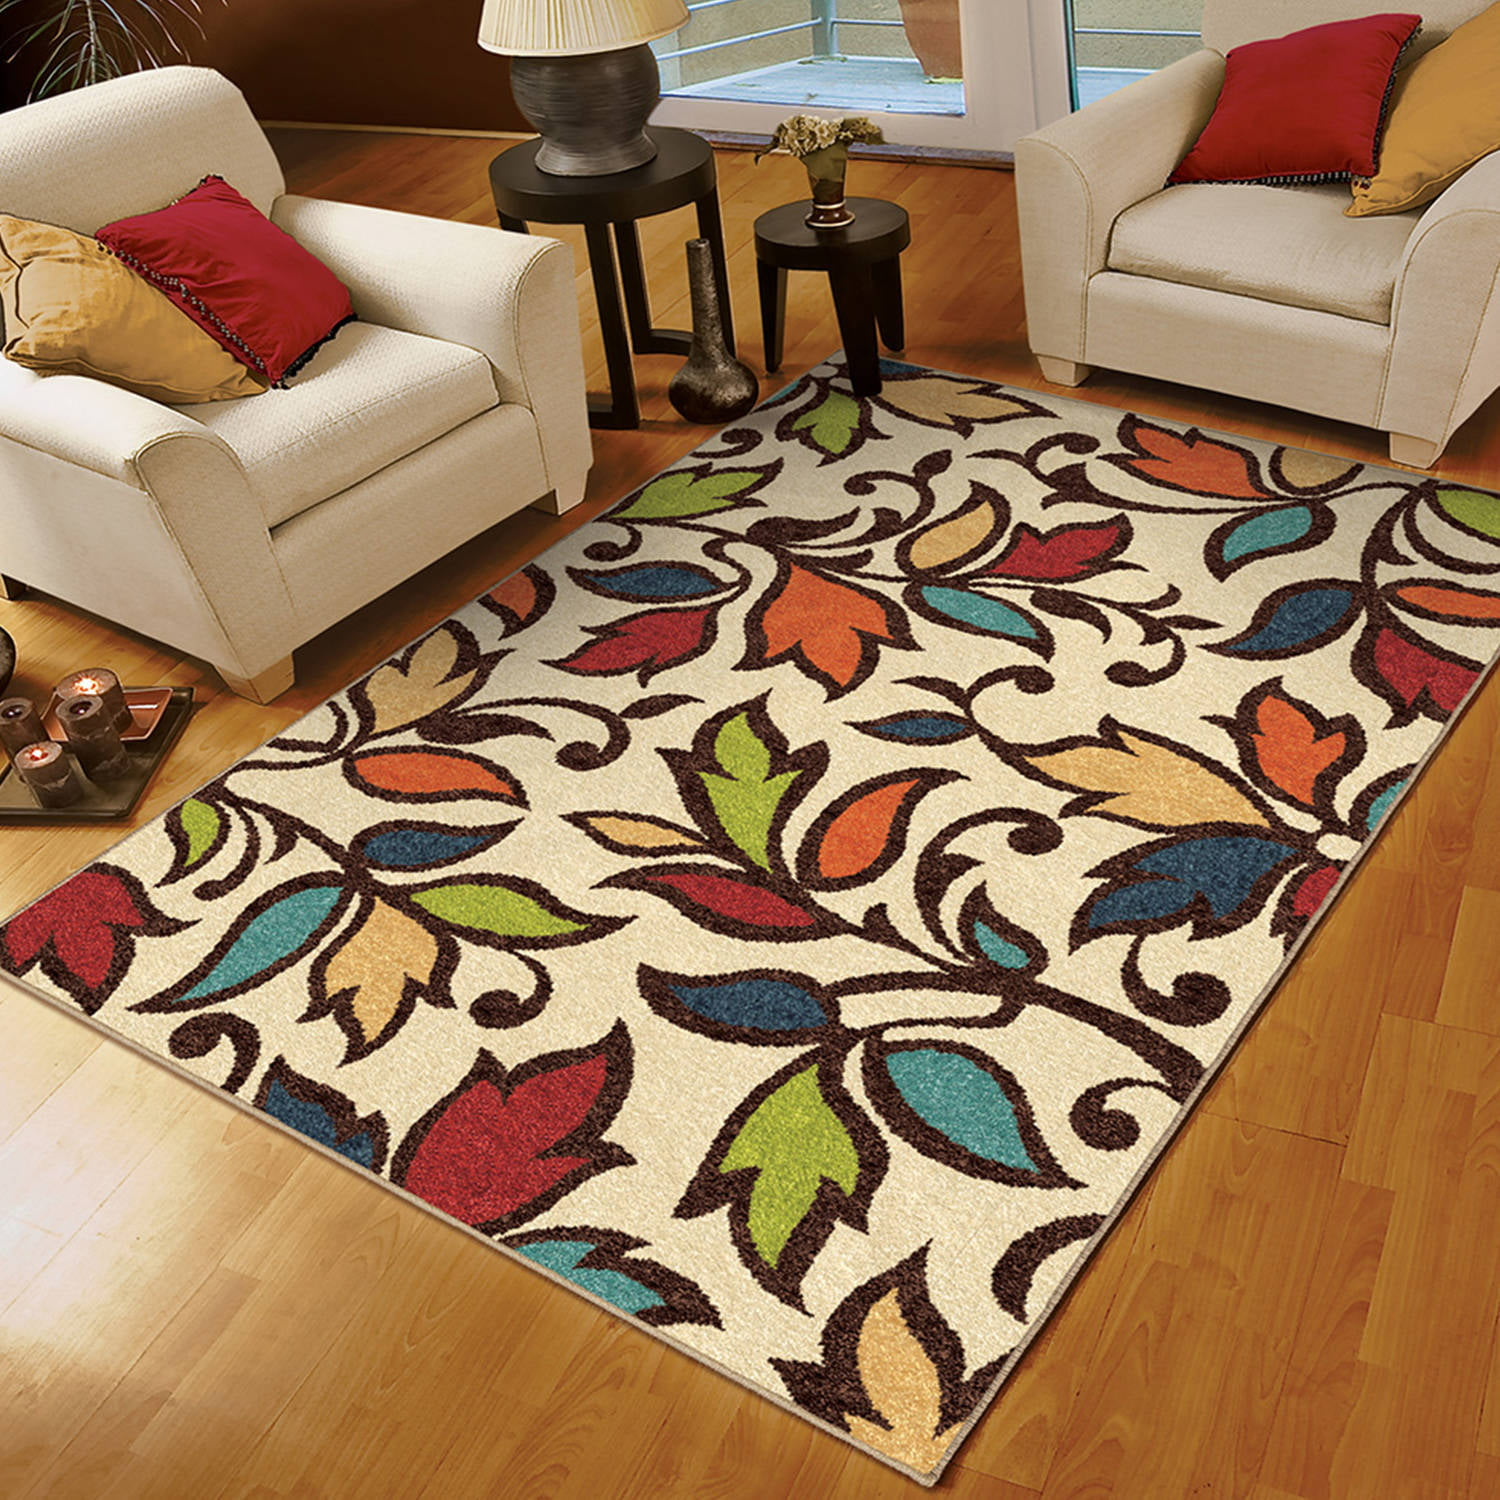 to rug furniture area article in inside areas oriental rugs interior design back square all fits